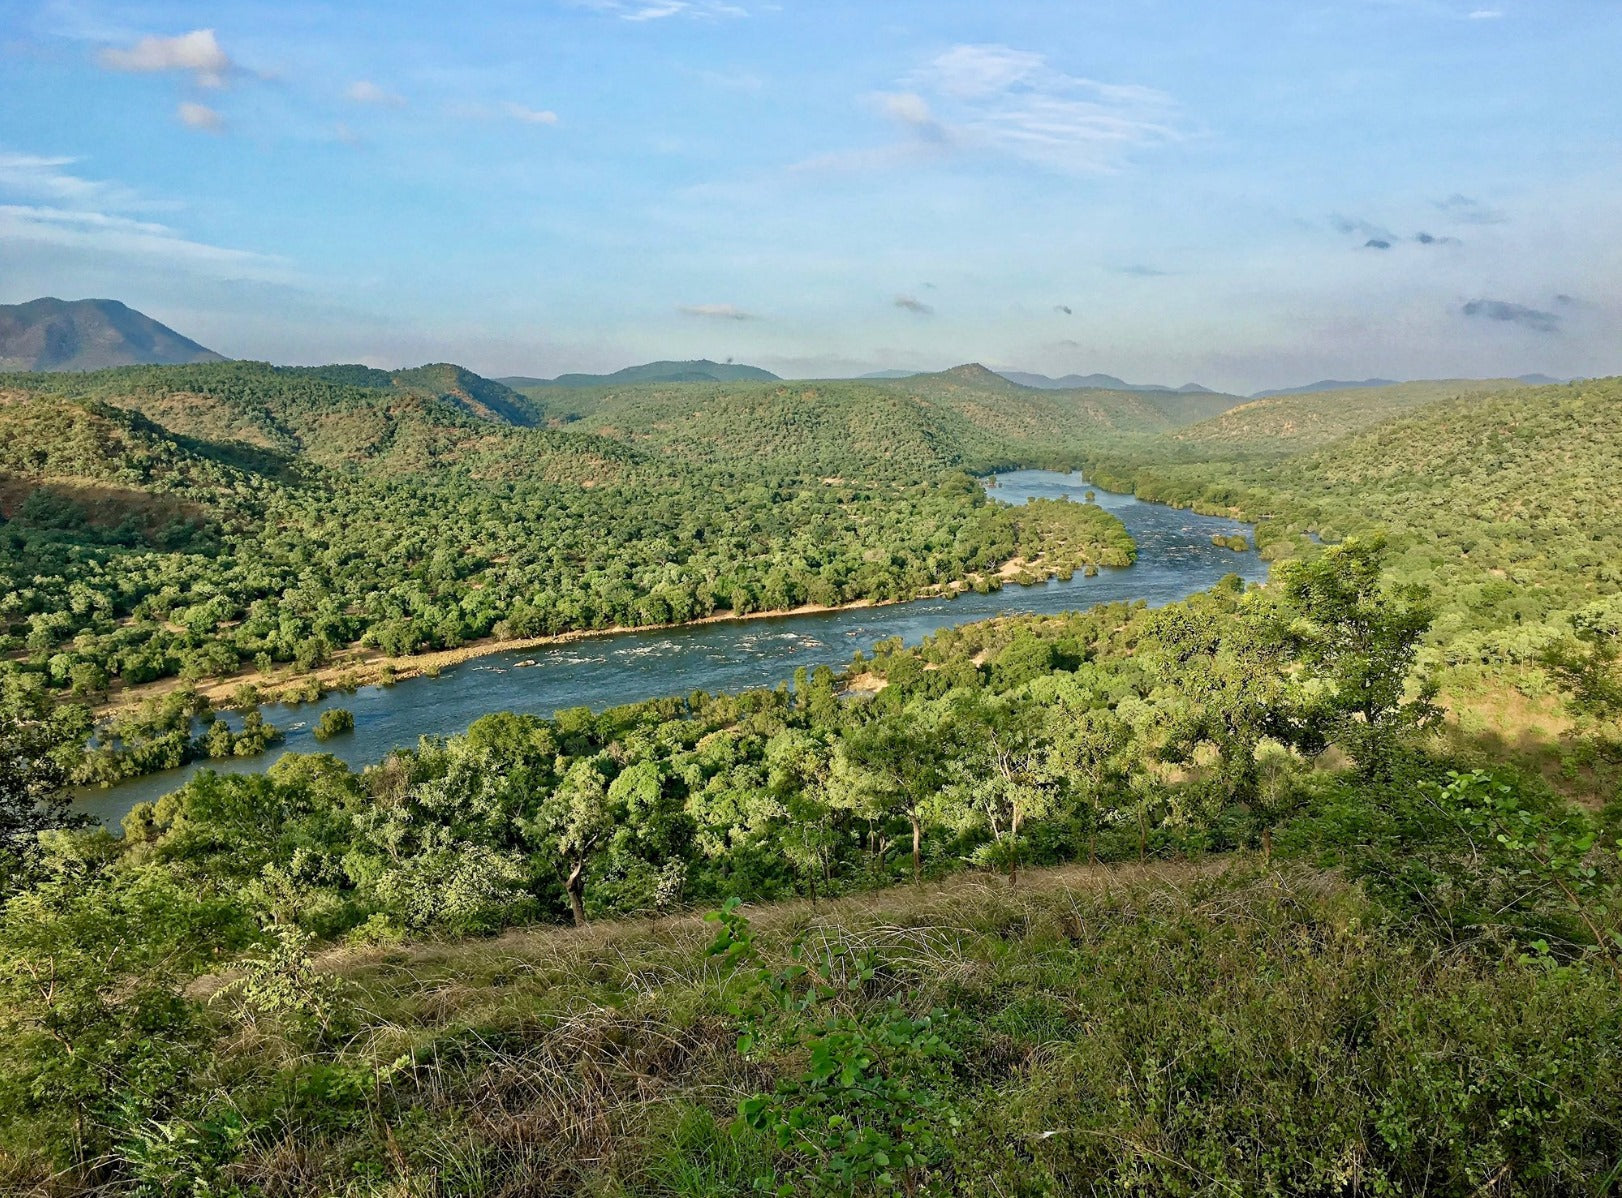 Mekadetu Project to take Land Away from Cauvery Wildlife Sanctuary!